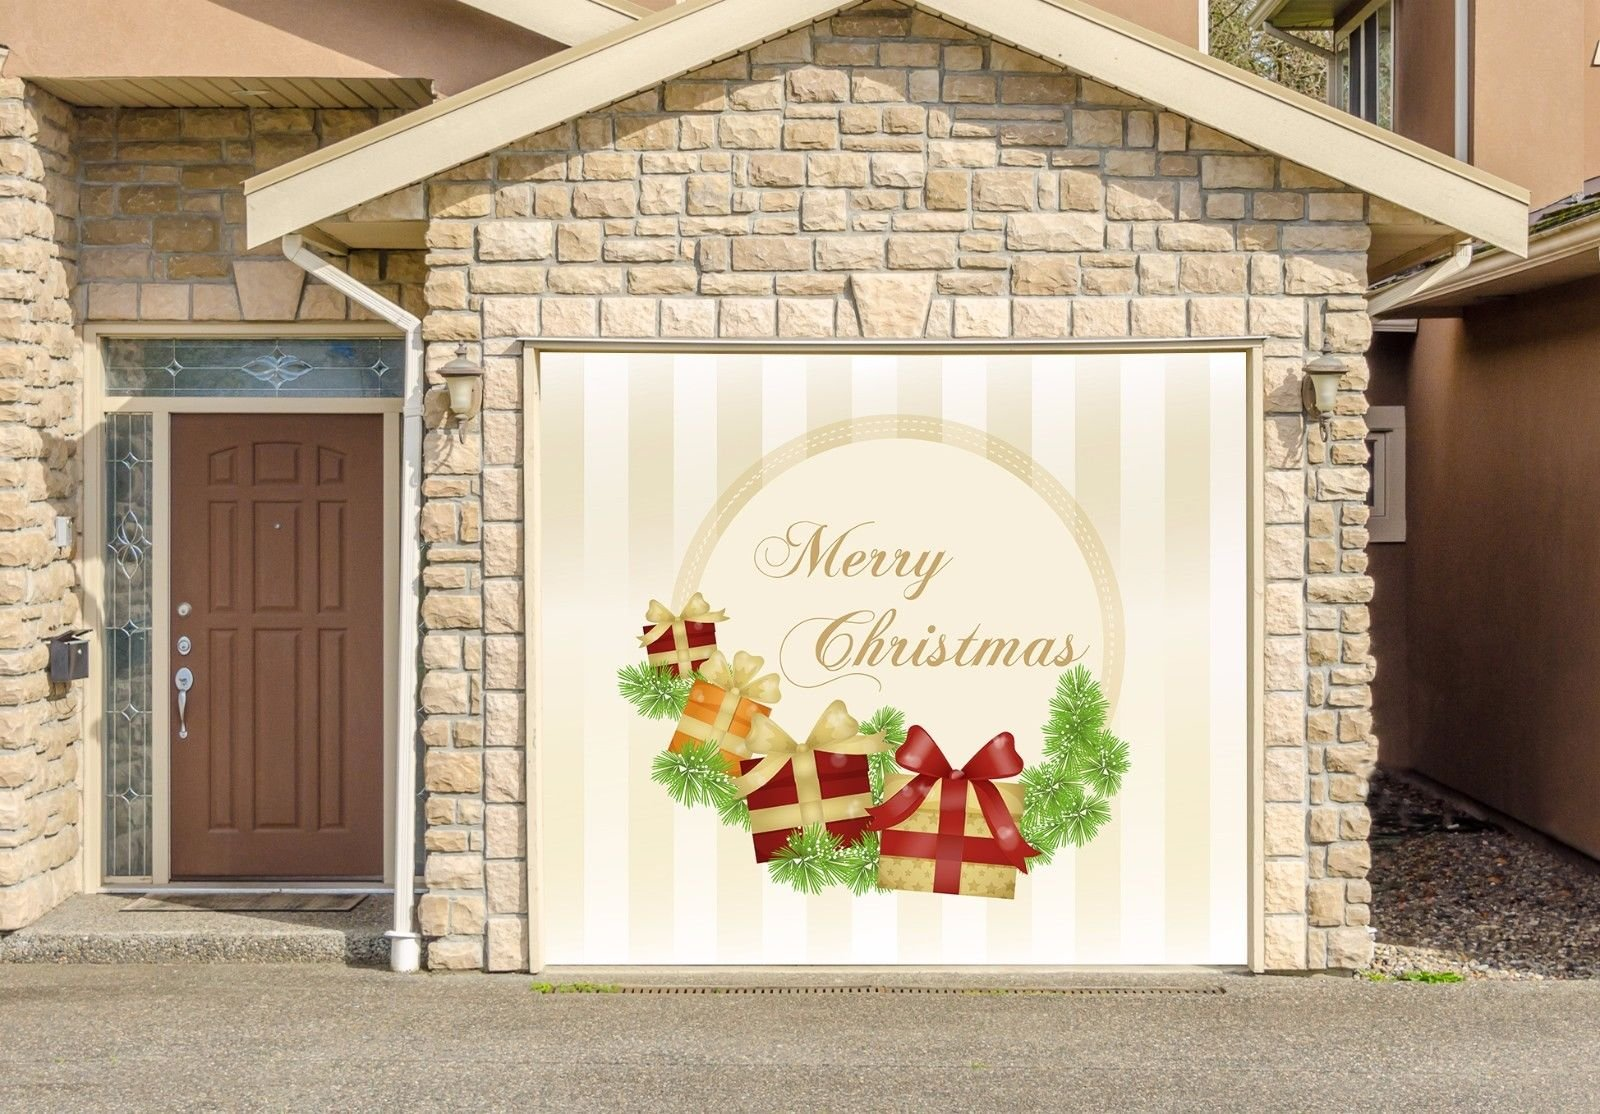 Christmas Decor Banner SINGLE CAR GARAGE DOOR MURALS Covers Outdoor Home Decor Door Cover Billboard Full Color 3D Effect Print Door Decor Decorations of House Garage Holiday Size 83 x 89 inches DAV62 by WallTattooHome